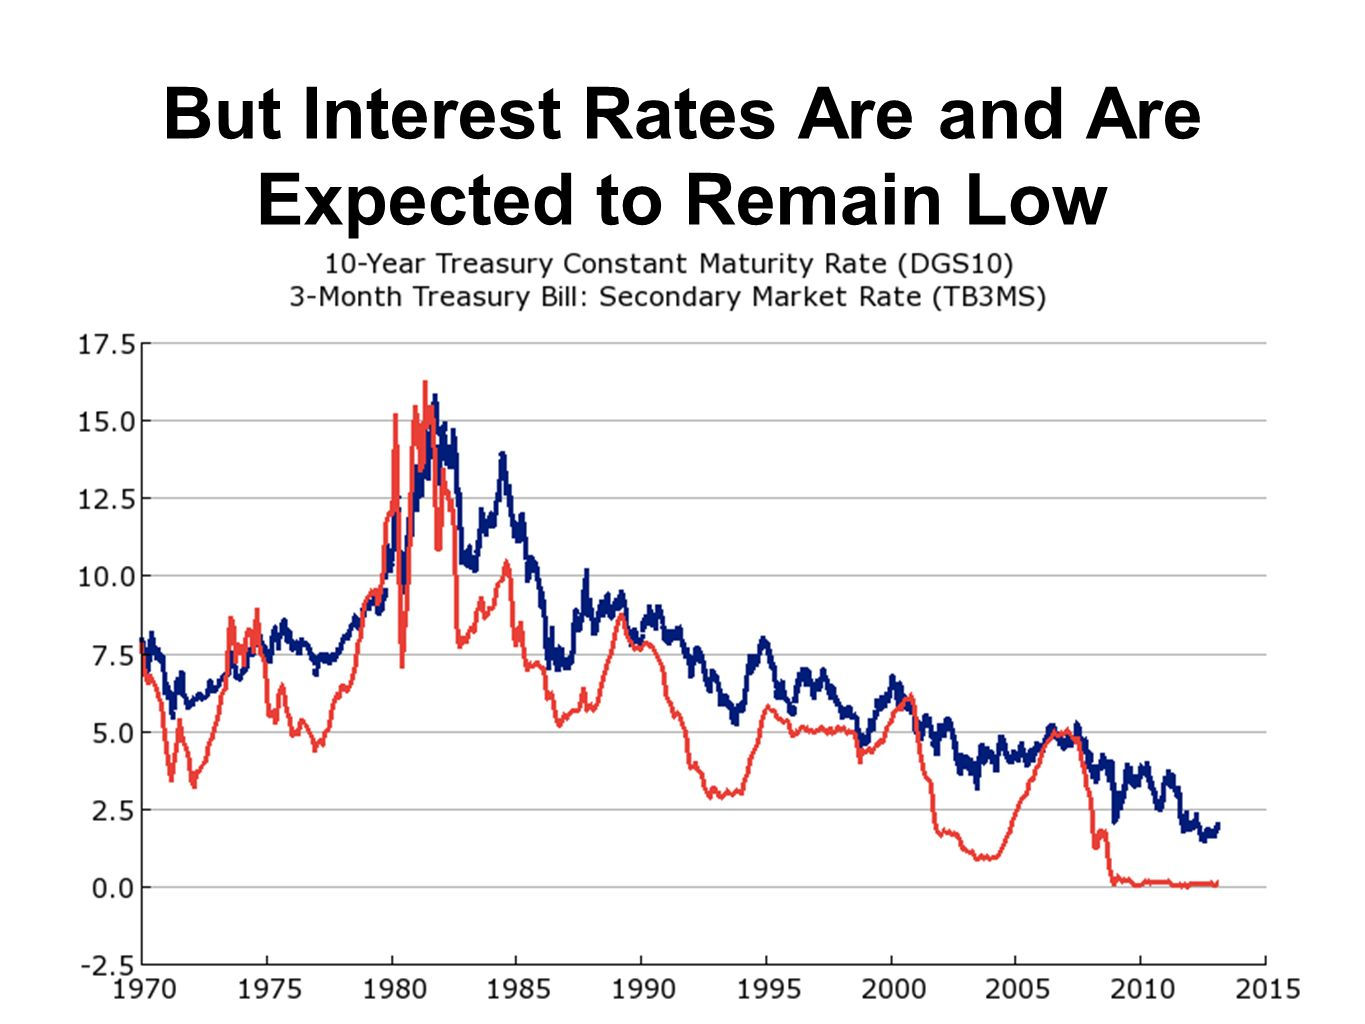 But Interest Rates Are and Are Expected to Remain Low